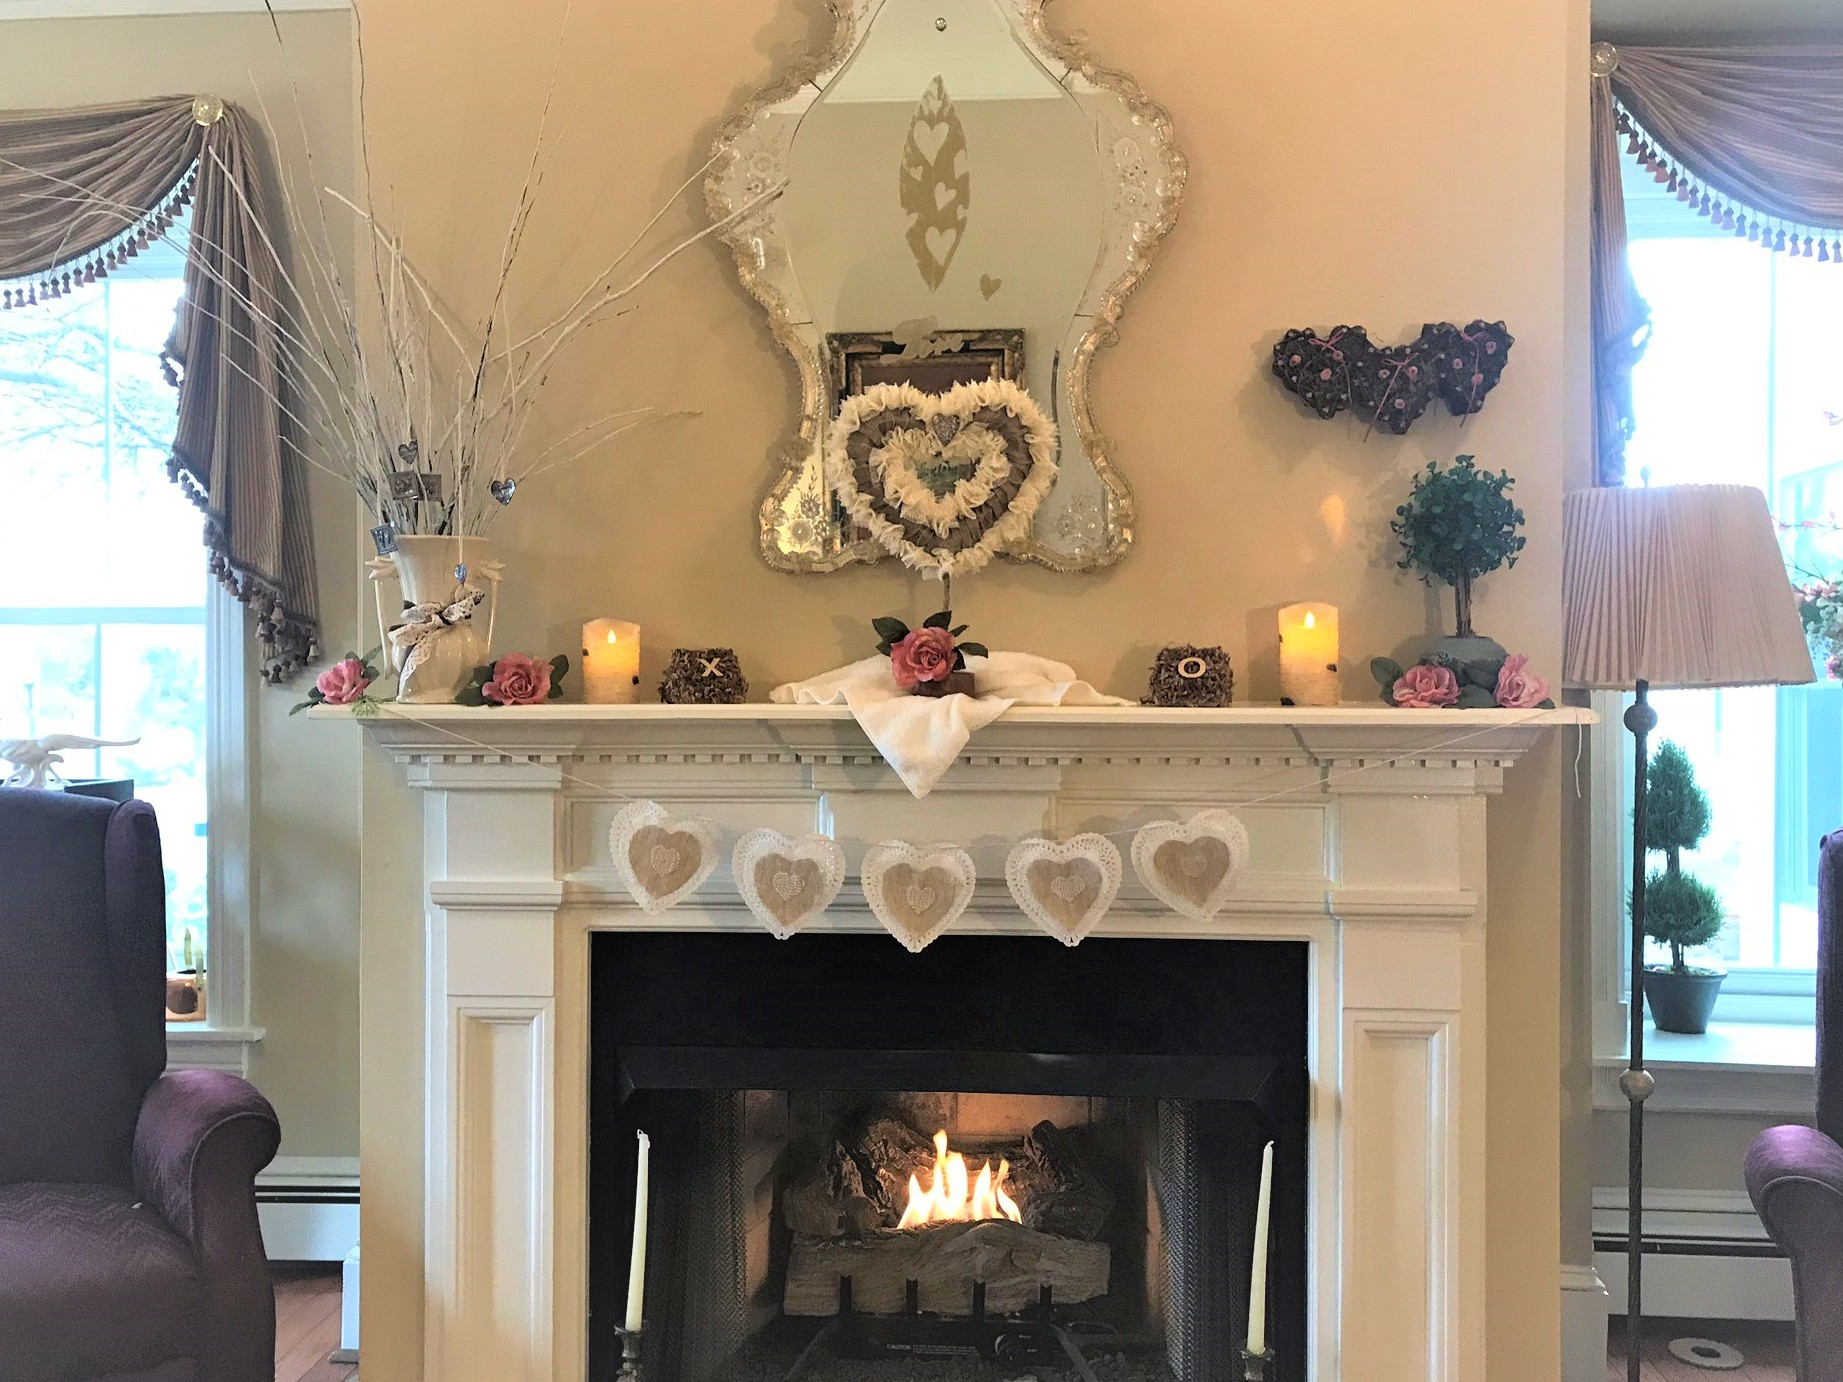 fireplace with a roaring fireplace with a tan heart decoration on mantel and antique mirror with hearts. also a x and an o decoration.